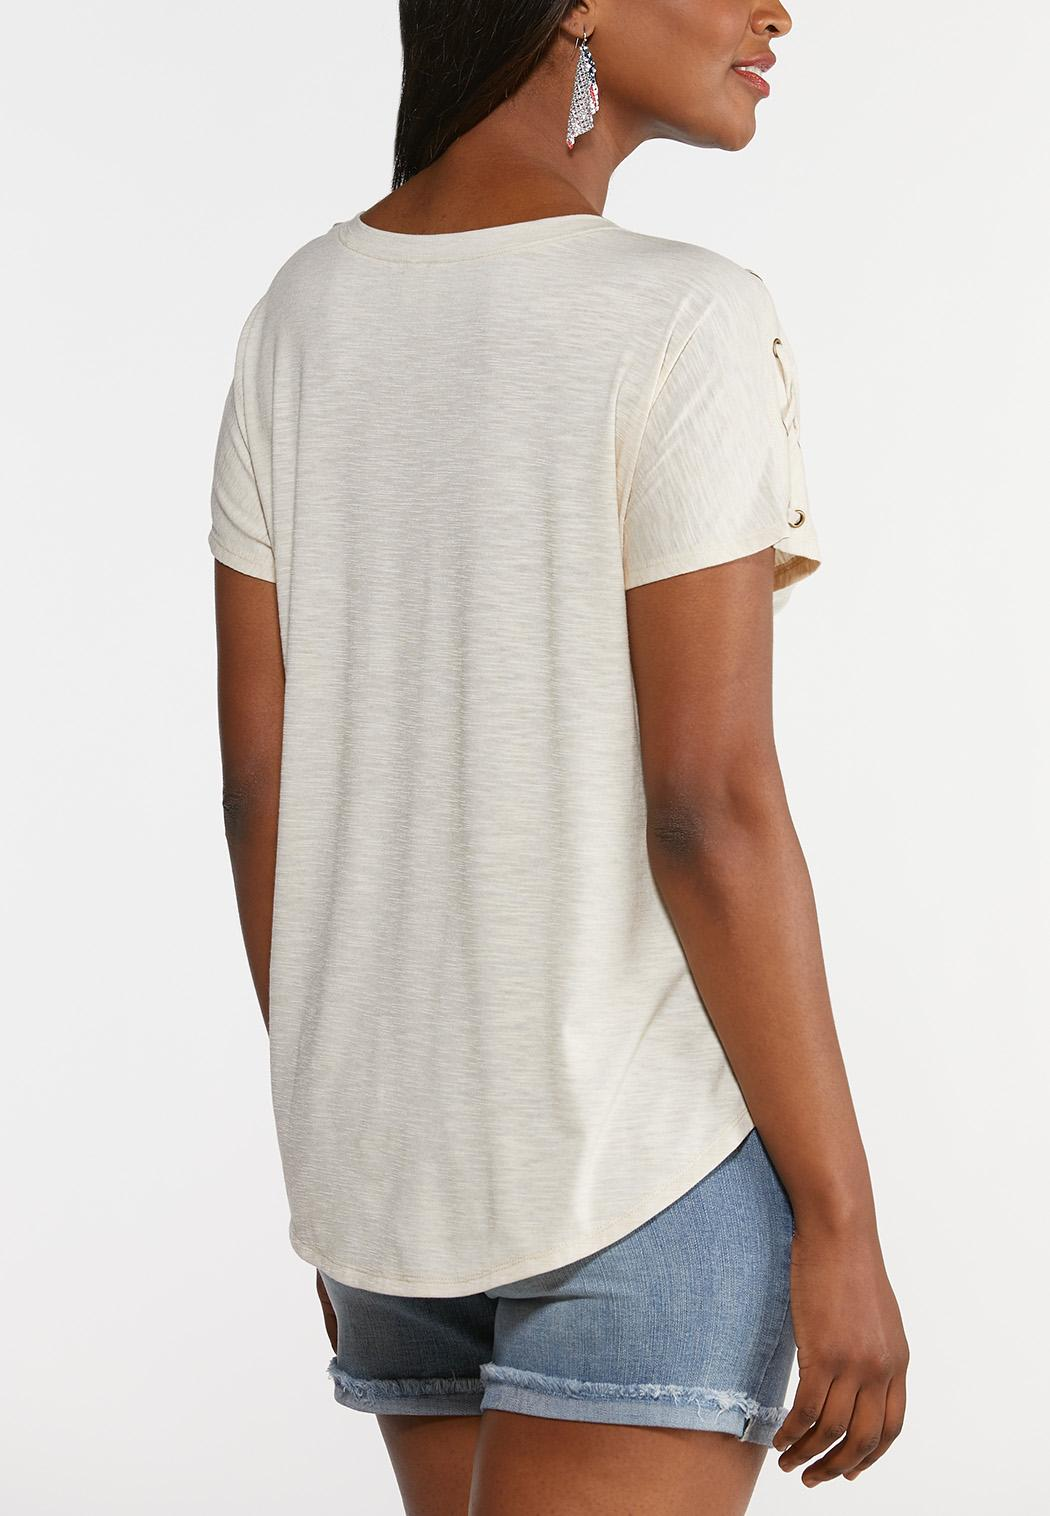 American Made Graphic Tee (Item #44262216)